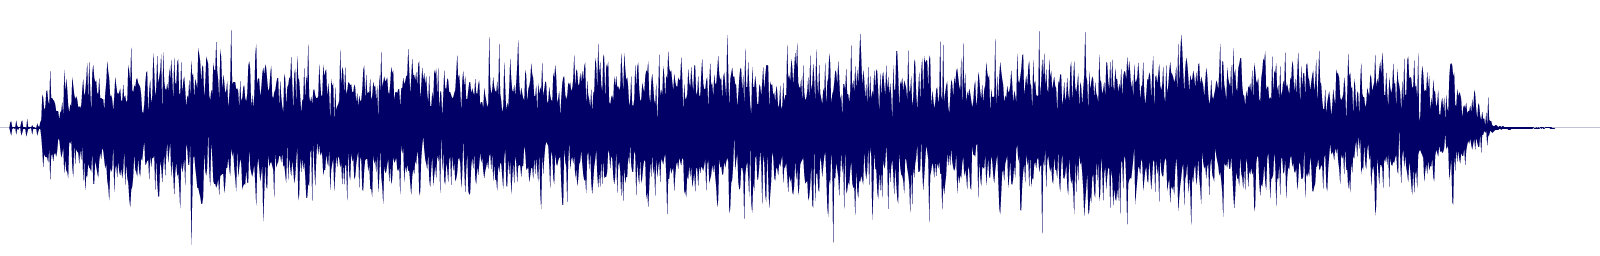 waveform of track #150067